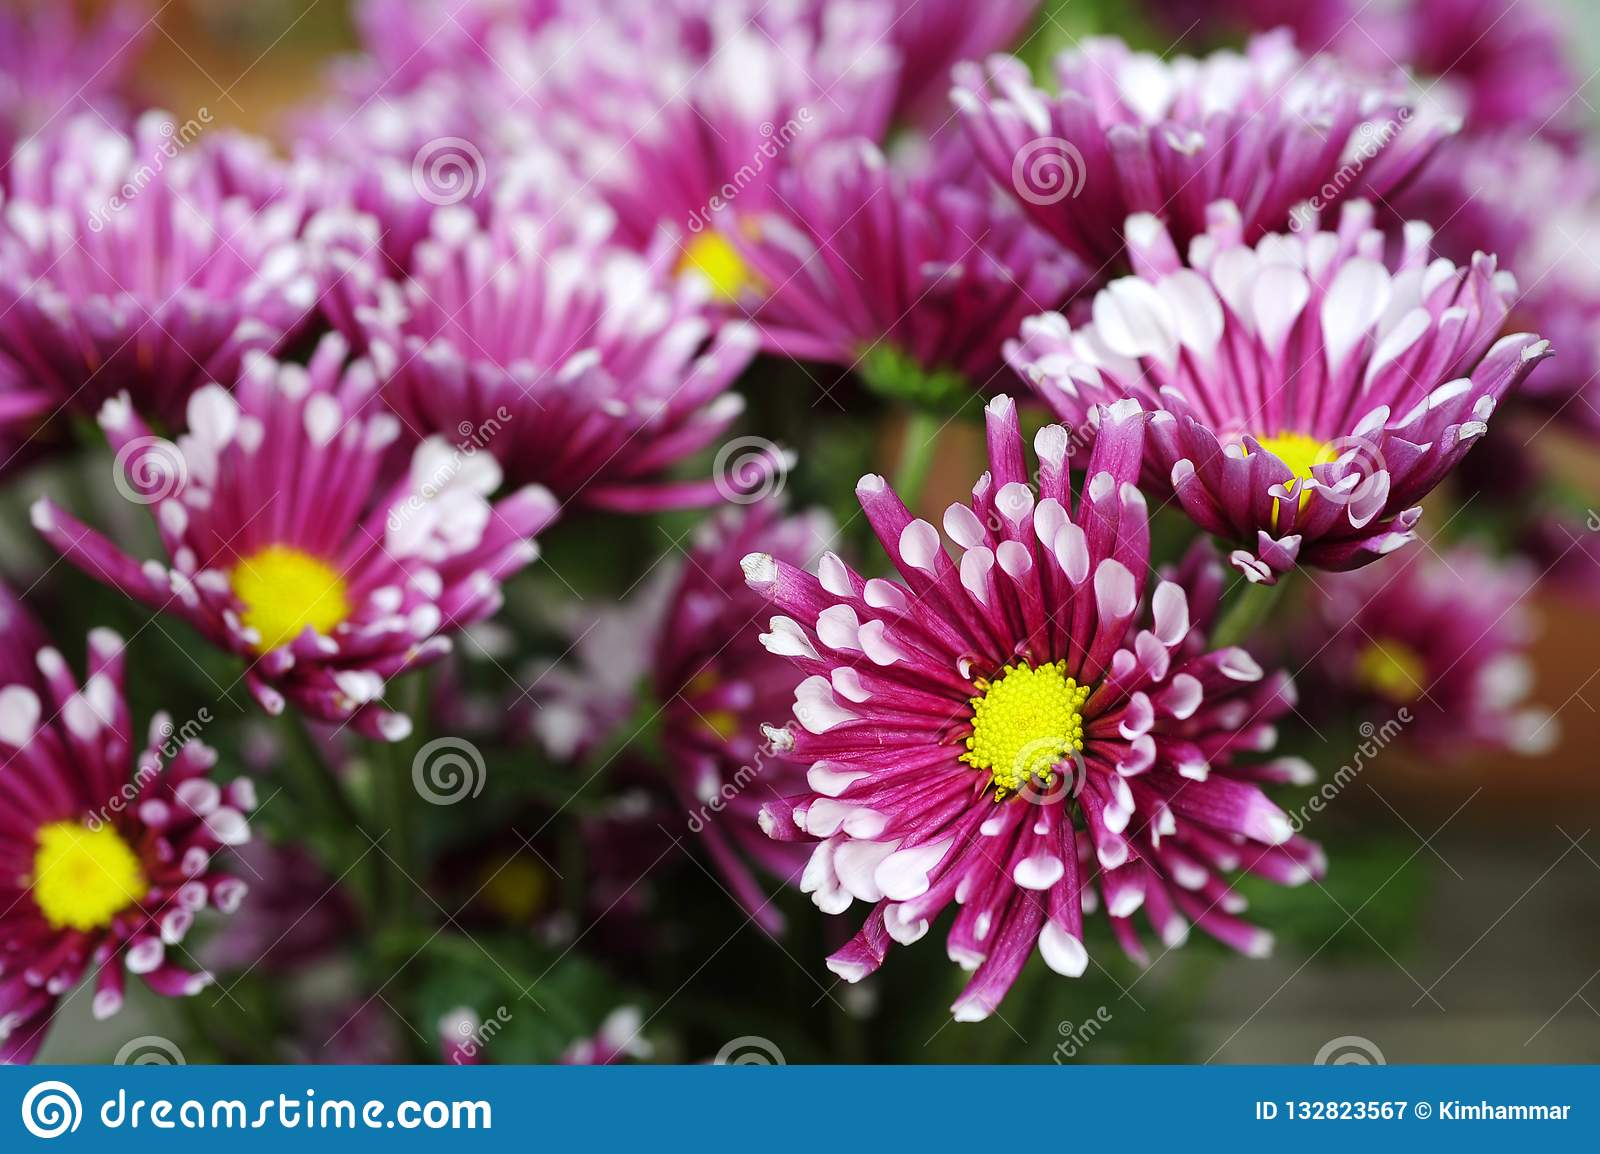 Pink Chrysanthemums Or Pom Pom Mums With White Tips Bloom Stock